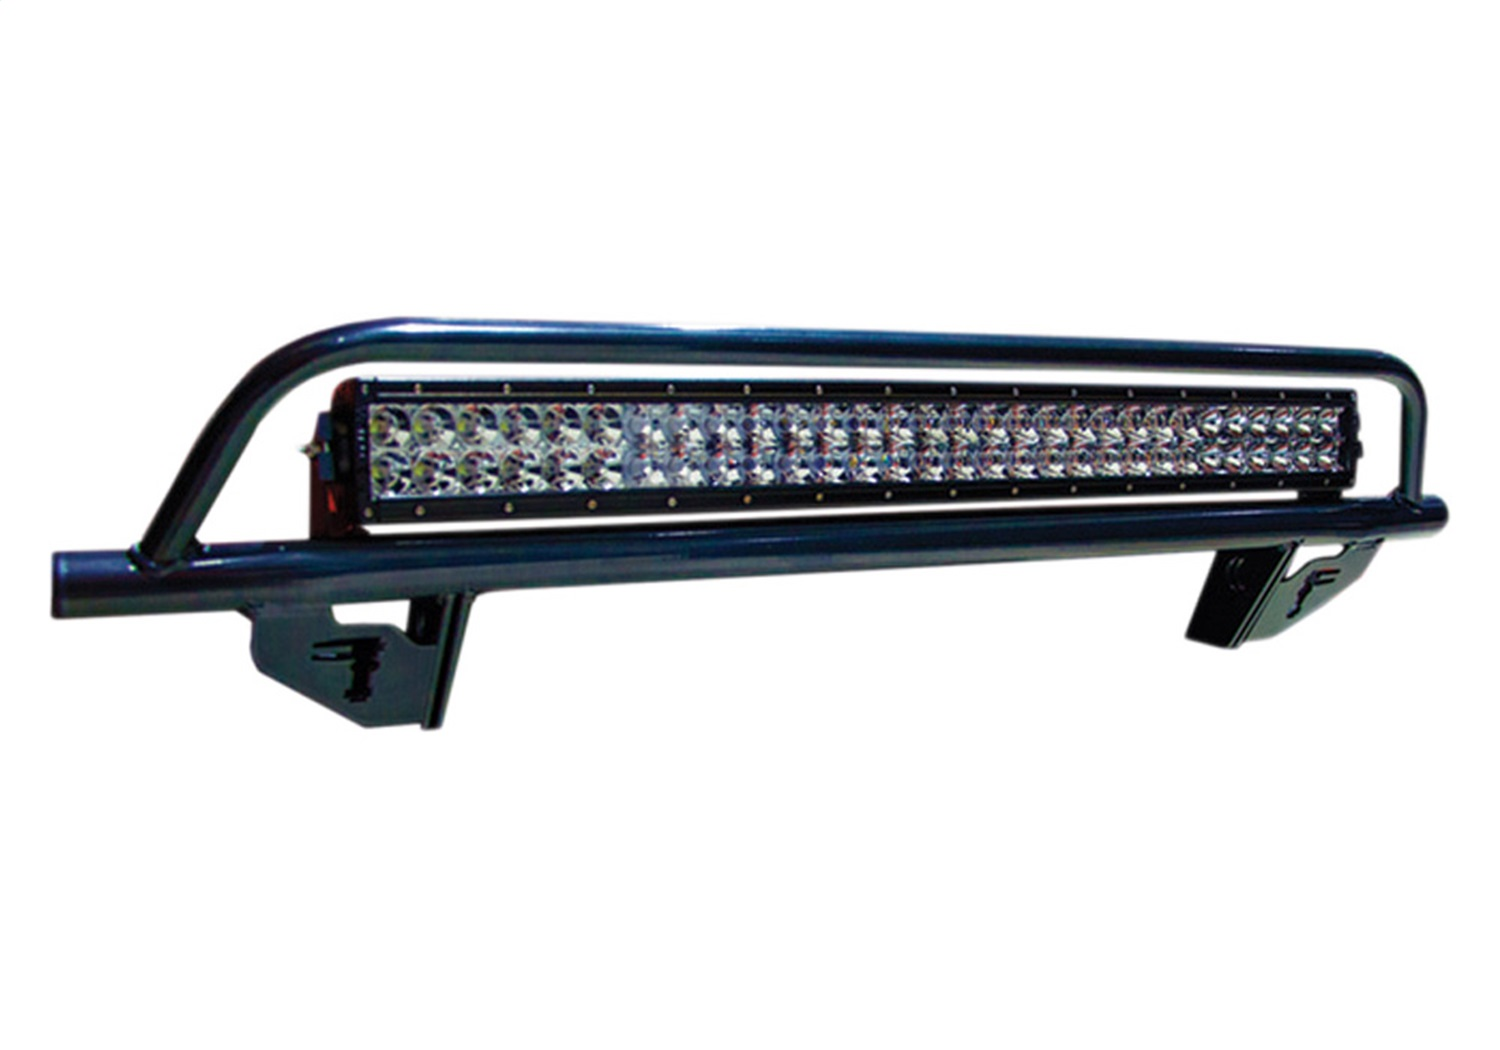 N-Fab T1230OR Off-Road Light Bar Multi-Mount System Fits 12-15 Tacoma